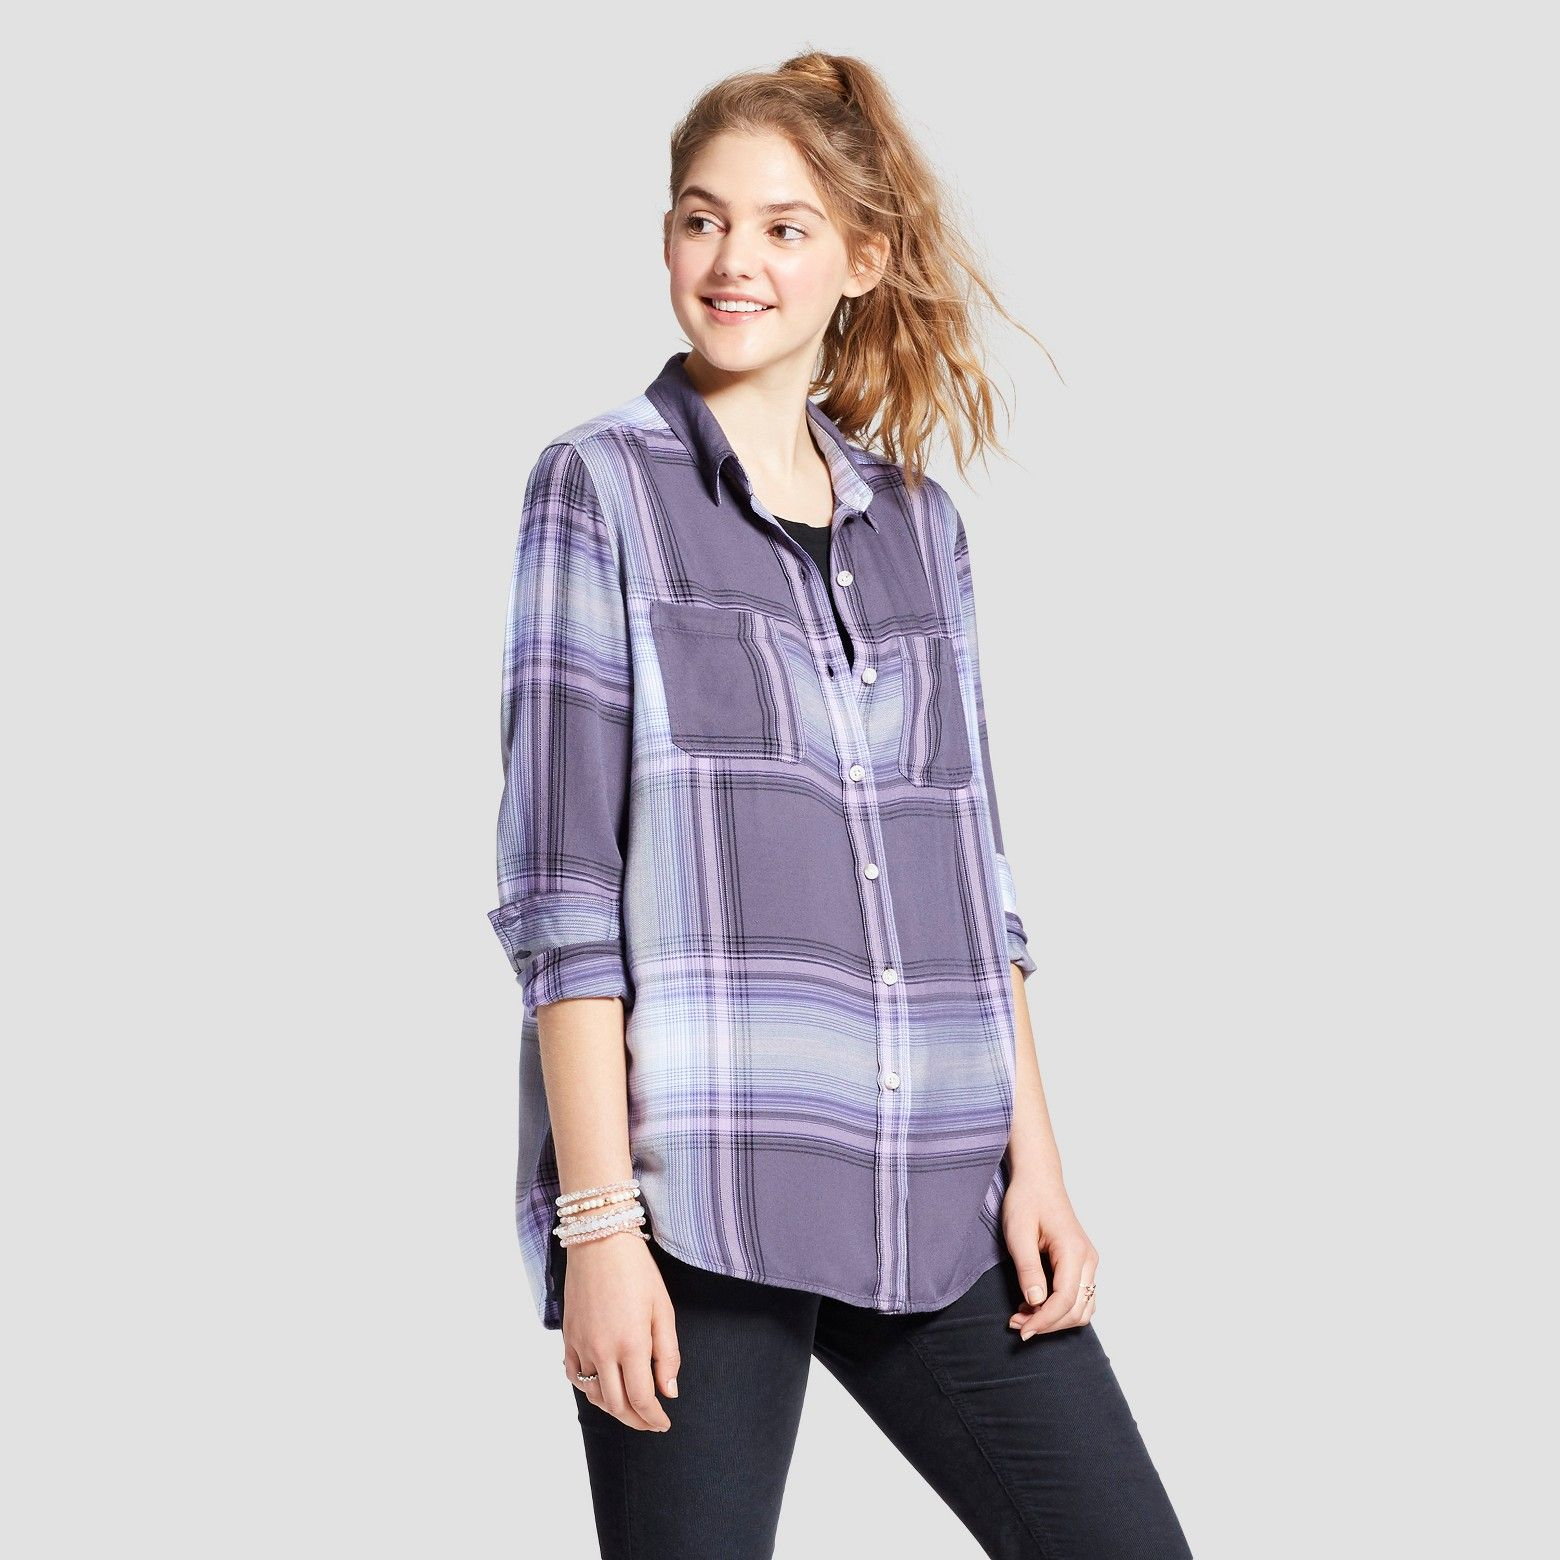 ee75dfcec Go casual in the Boyfriend Button-Down Shirt from Mossimo Supply Co.™ Pair